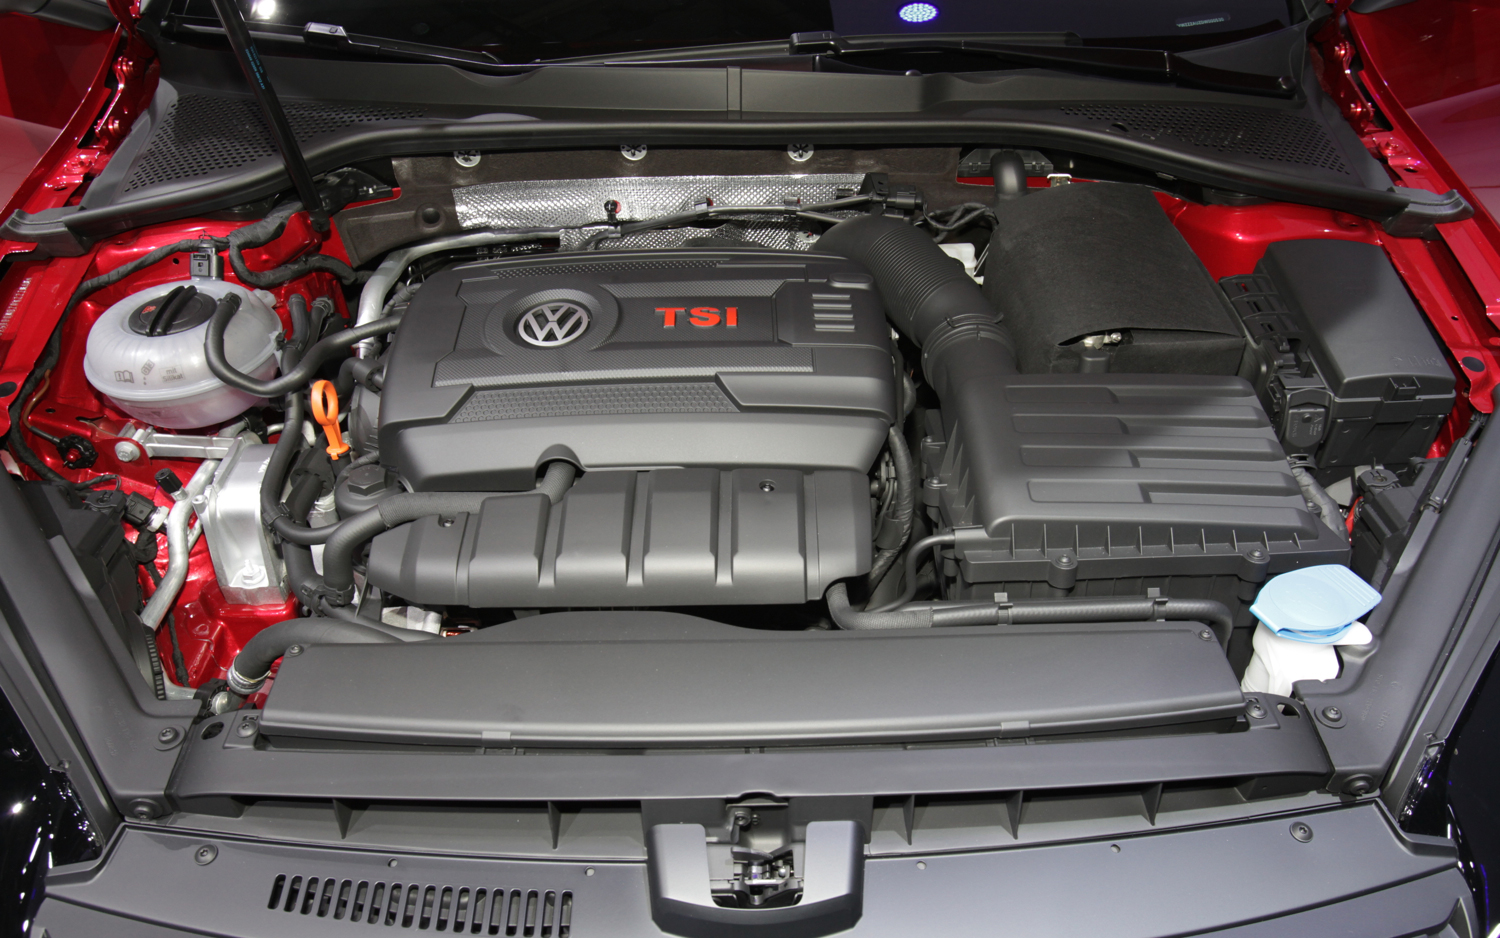 Volkswagen GTI engine #2